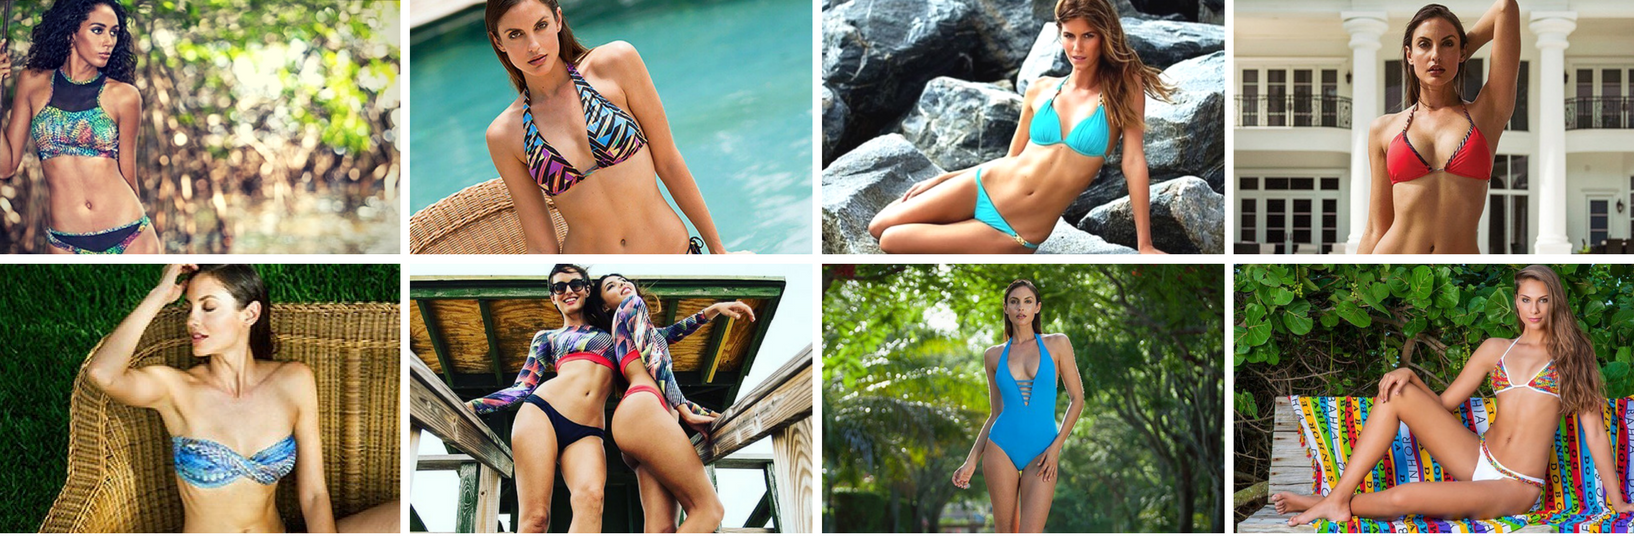 sambarela swimwear belle strategies social media marketing